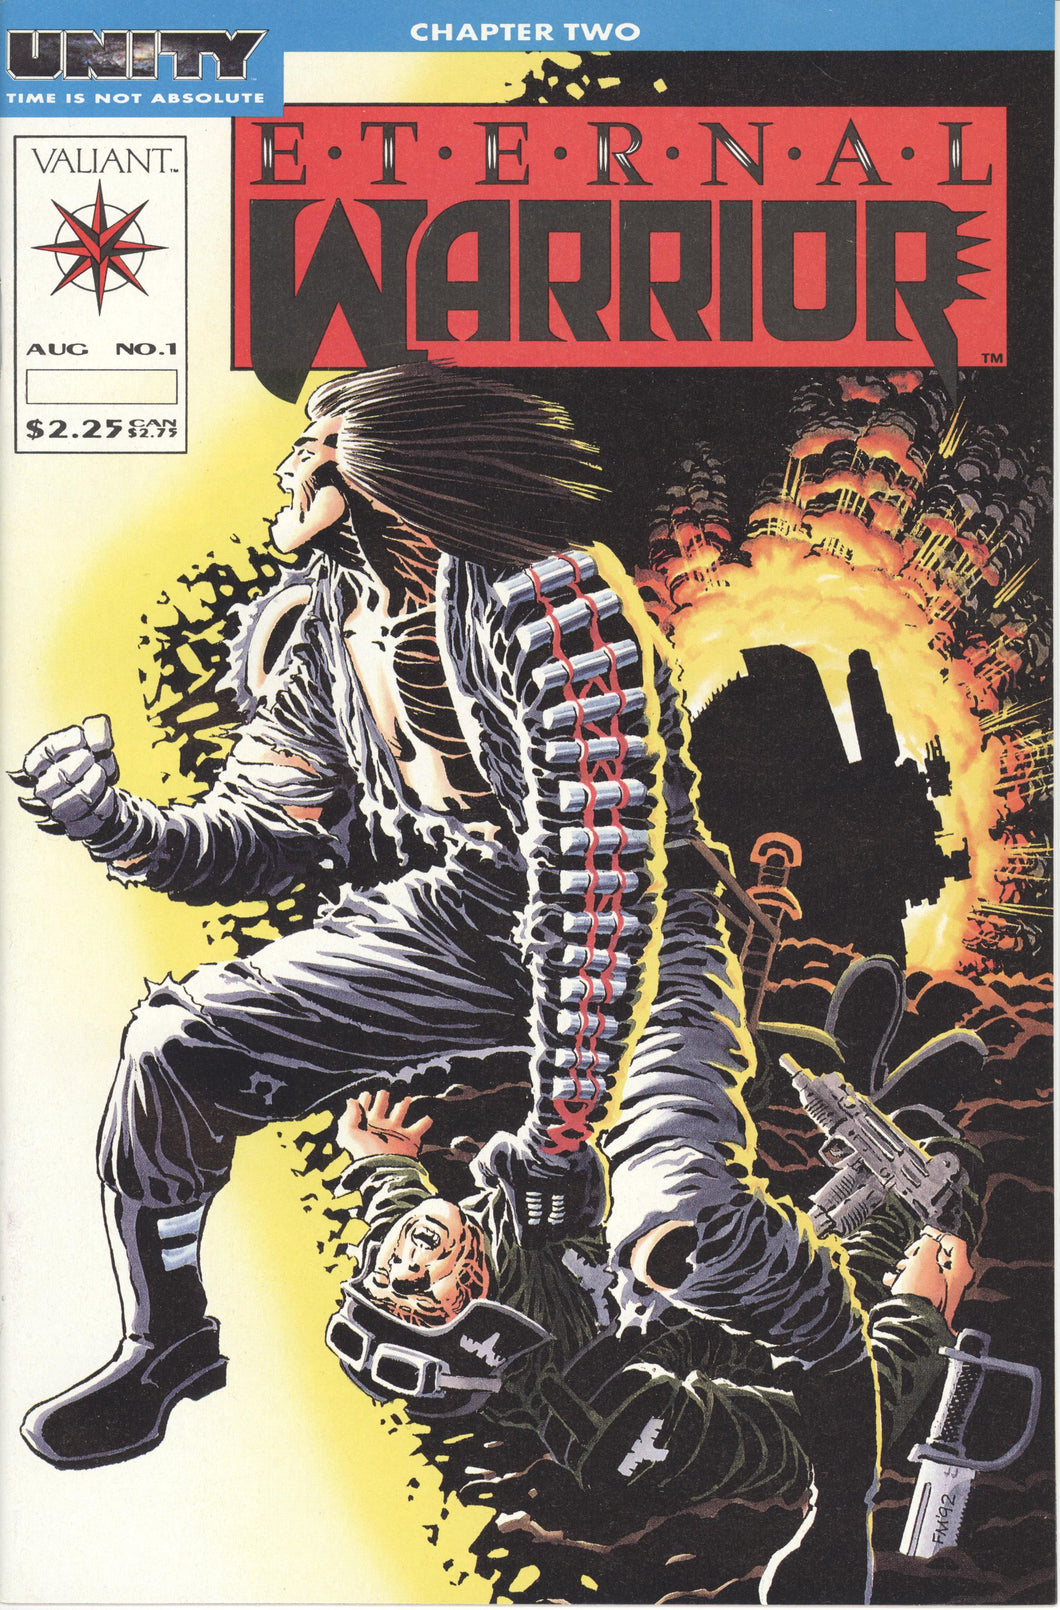 ETERNAL WARRIOR #1-50 + Yearbook 1-2, Special (1992 Valiant) FULL COMPLETE SET